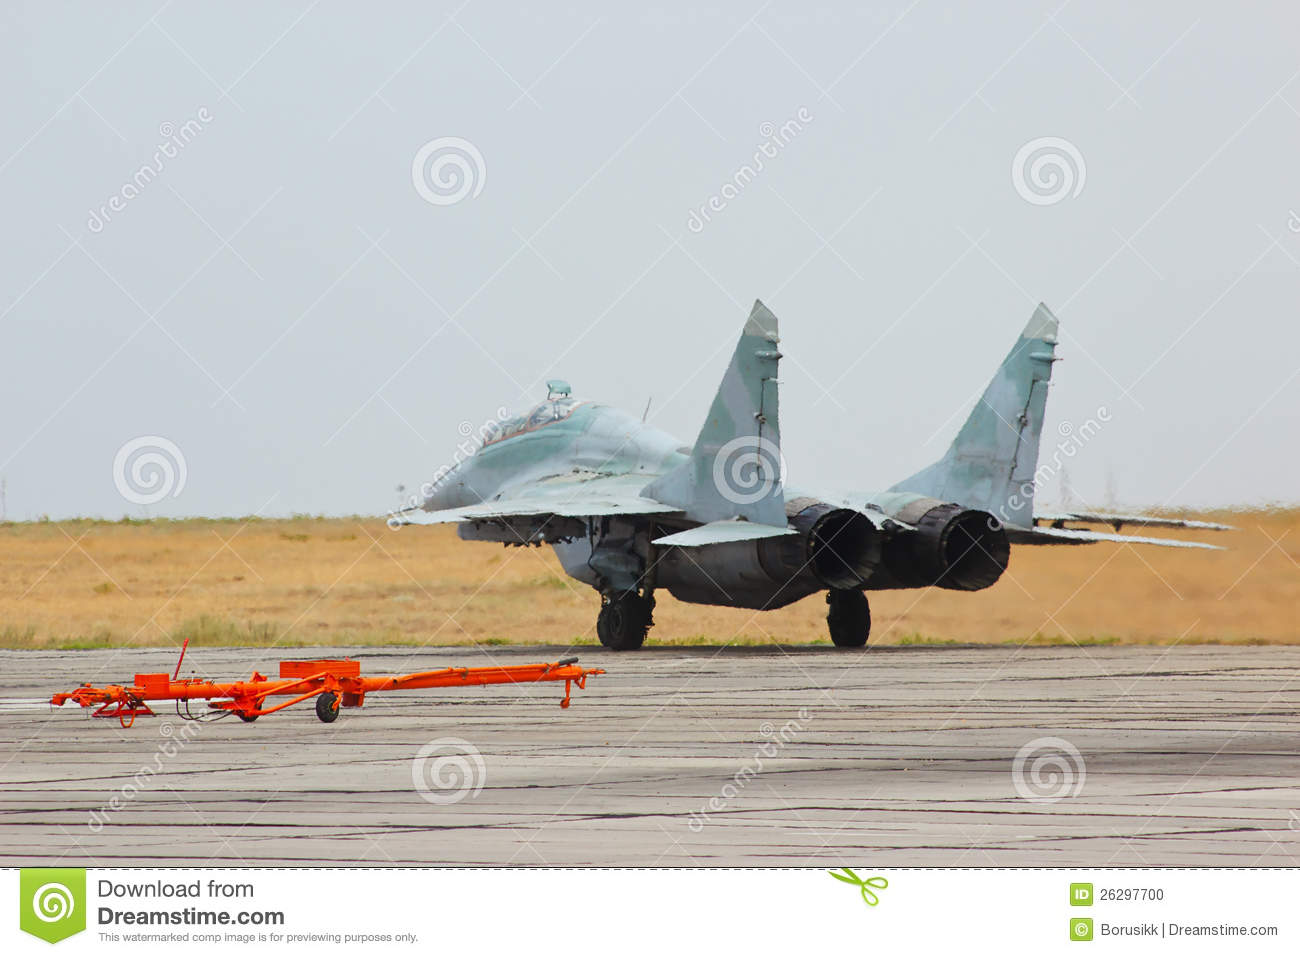 Soviet MiG fighter http://www.dreamstime.com/stock-photo-russian-jet-fighter-mig-29-air-base-image26297700